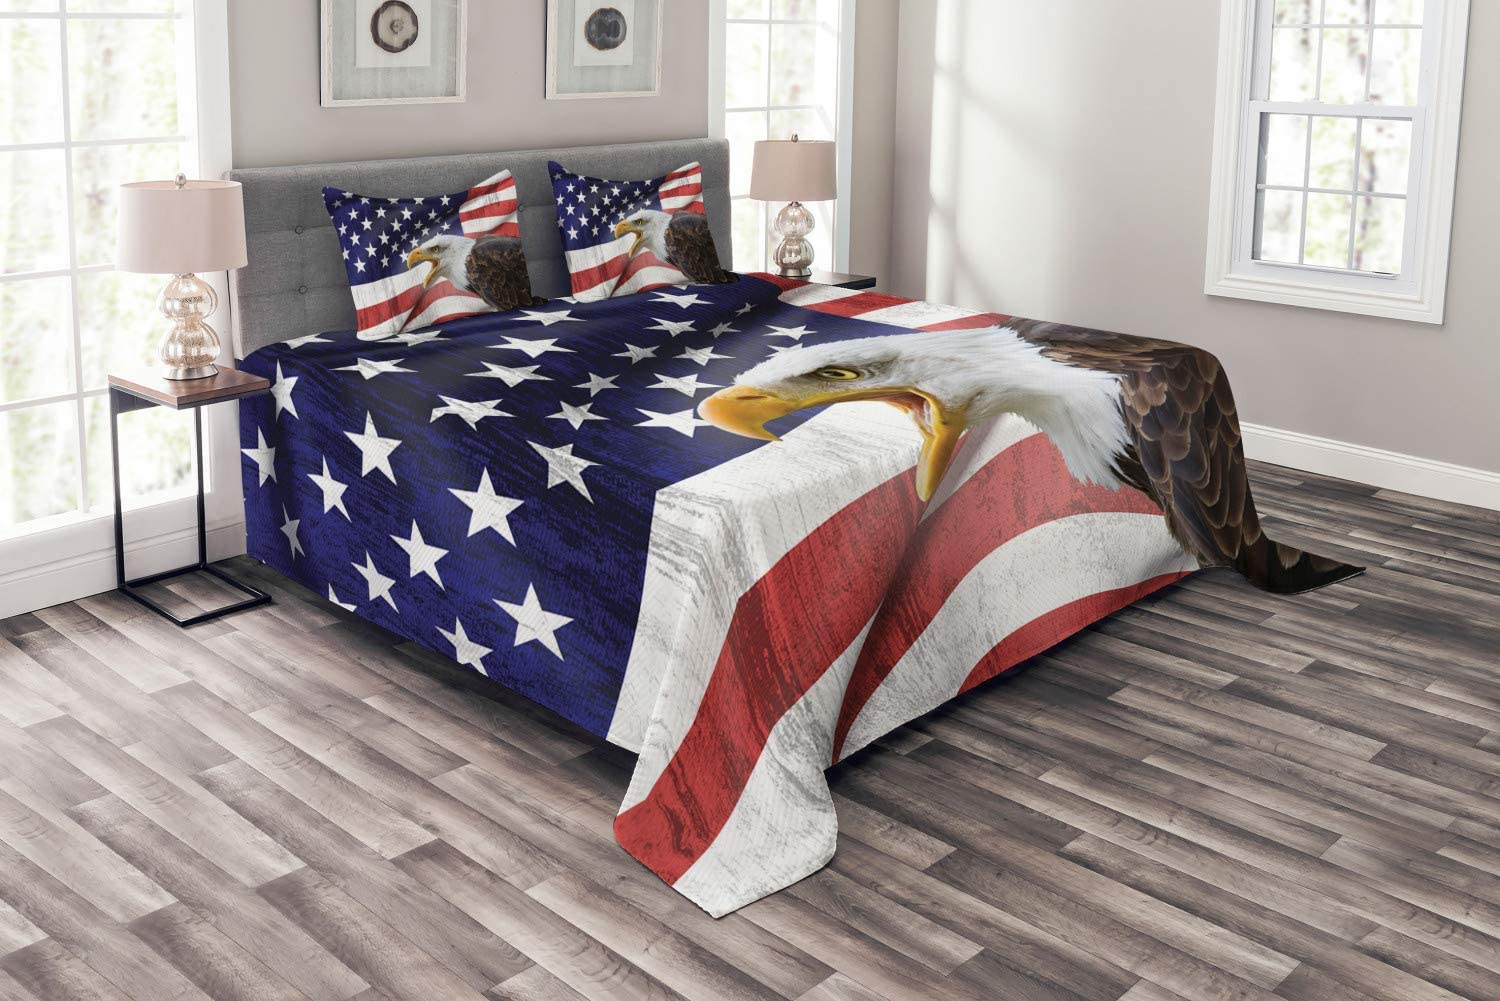 Ambesonne American Flag Bedspread, Eagle on Foreground Banner Pride History Solidarity Martial Identity, Decorative Quilted 3 Piece Coverlet Set with 2 Pillow Shams, King Size, Red Blue